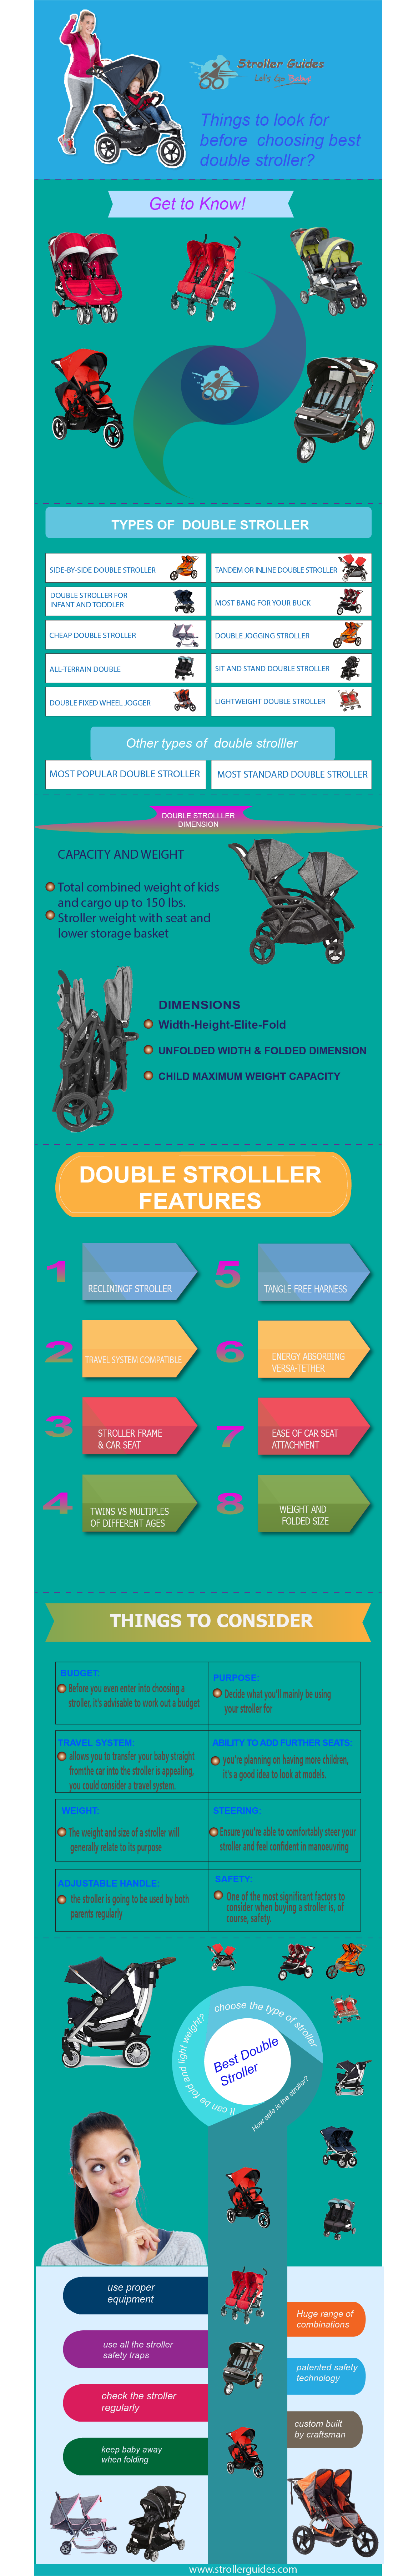 Things to look for before choosing best double stroller